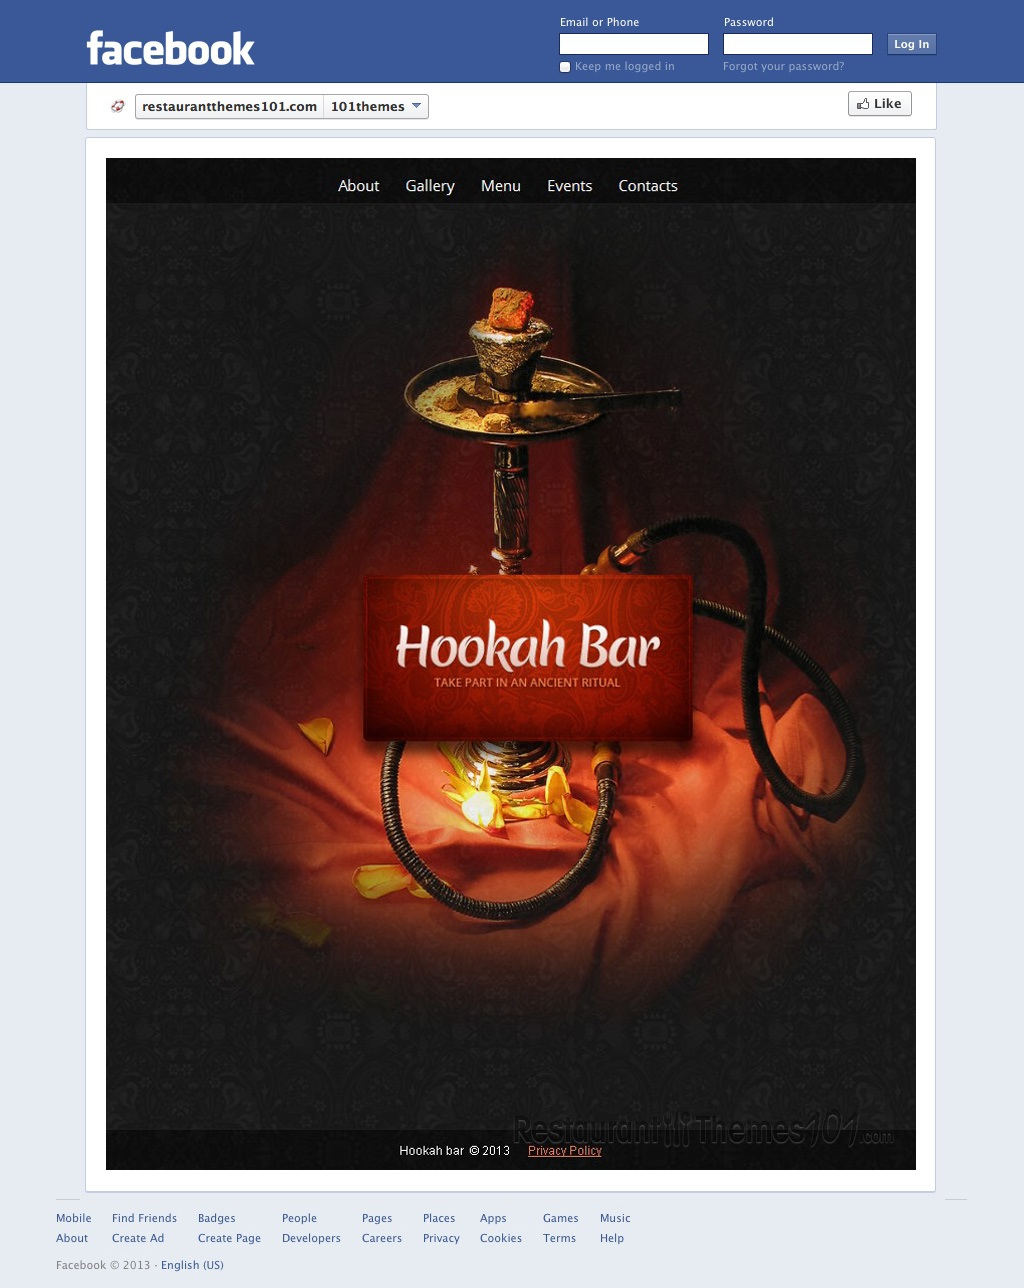 hookah bar review a facebook restaurant page template by template monster. Black Bedroom Furniture Sets. Home Design Ideas